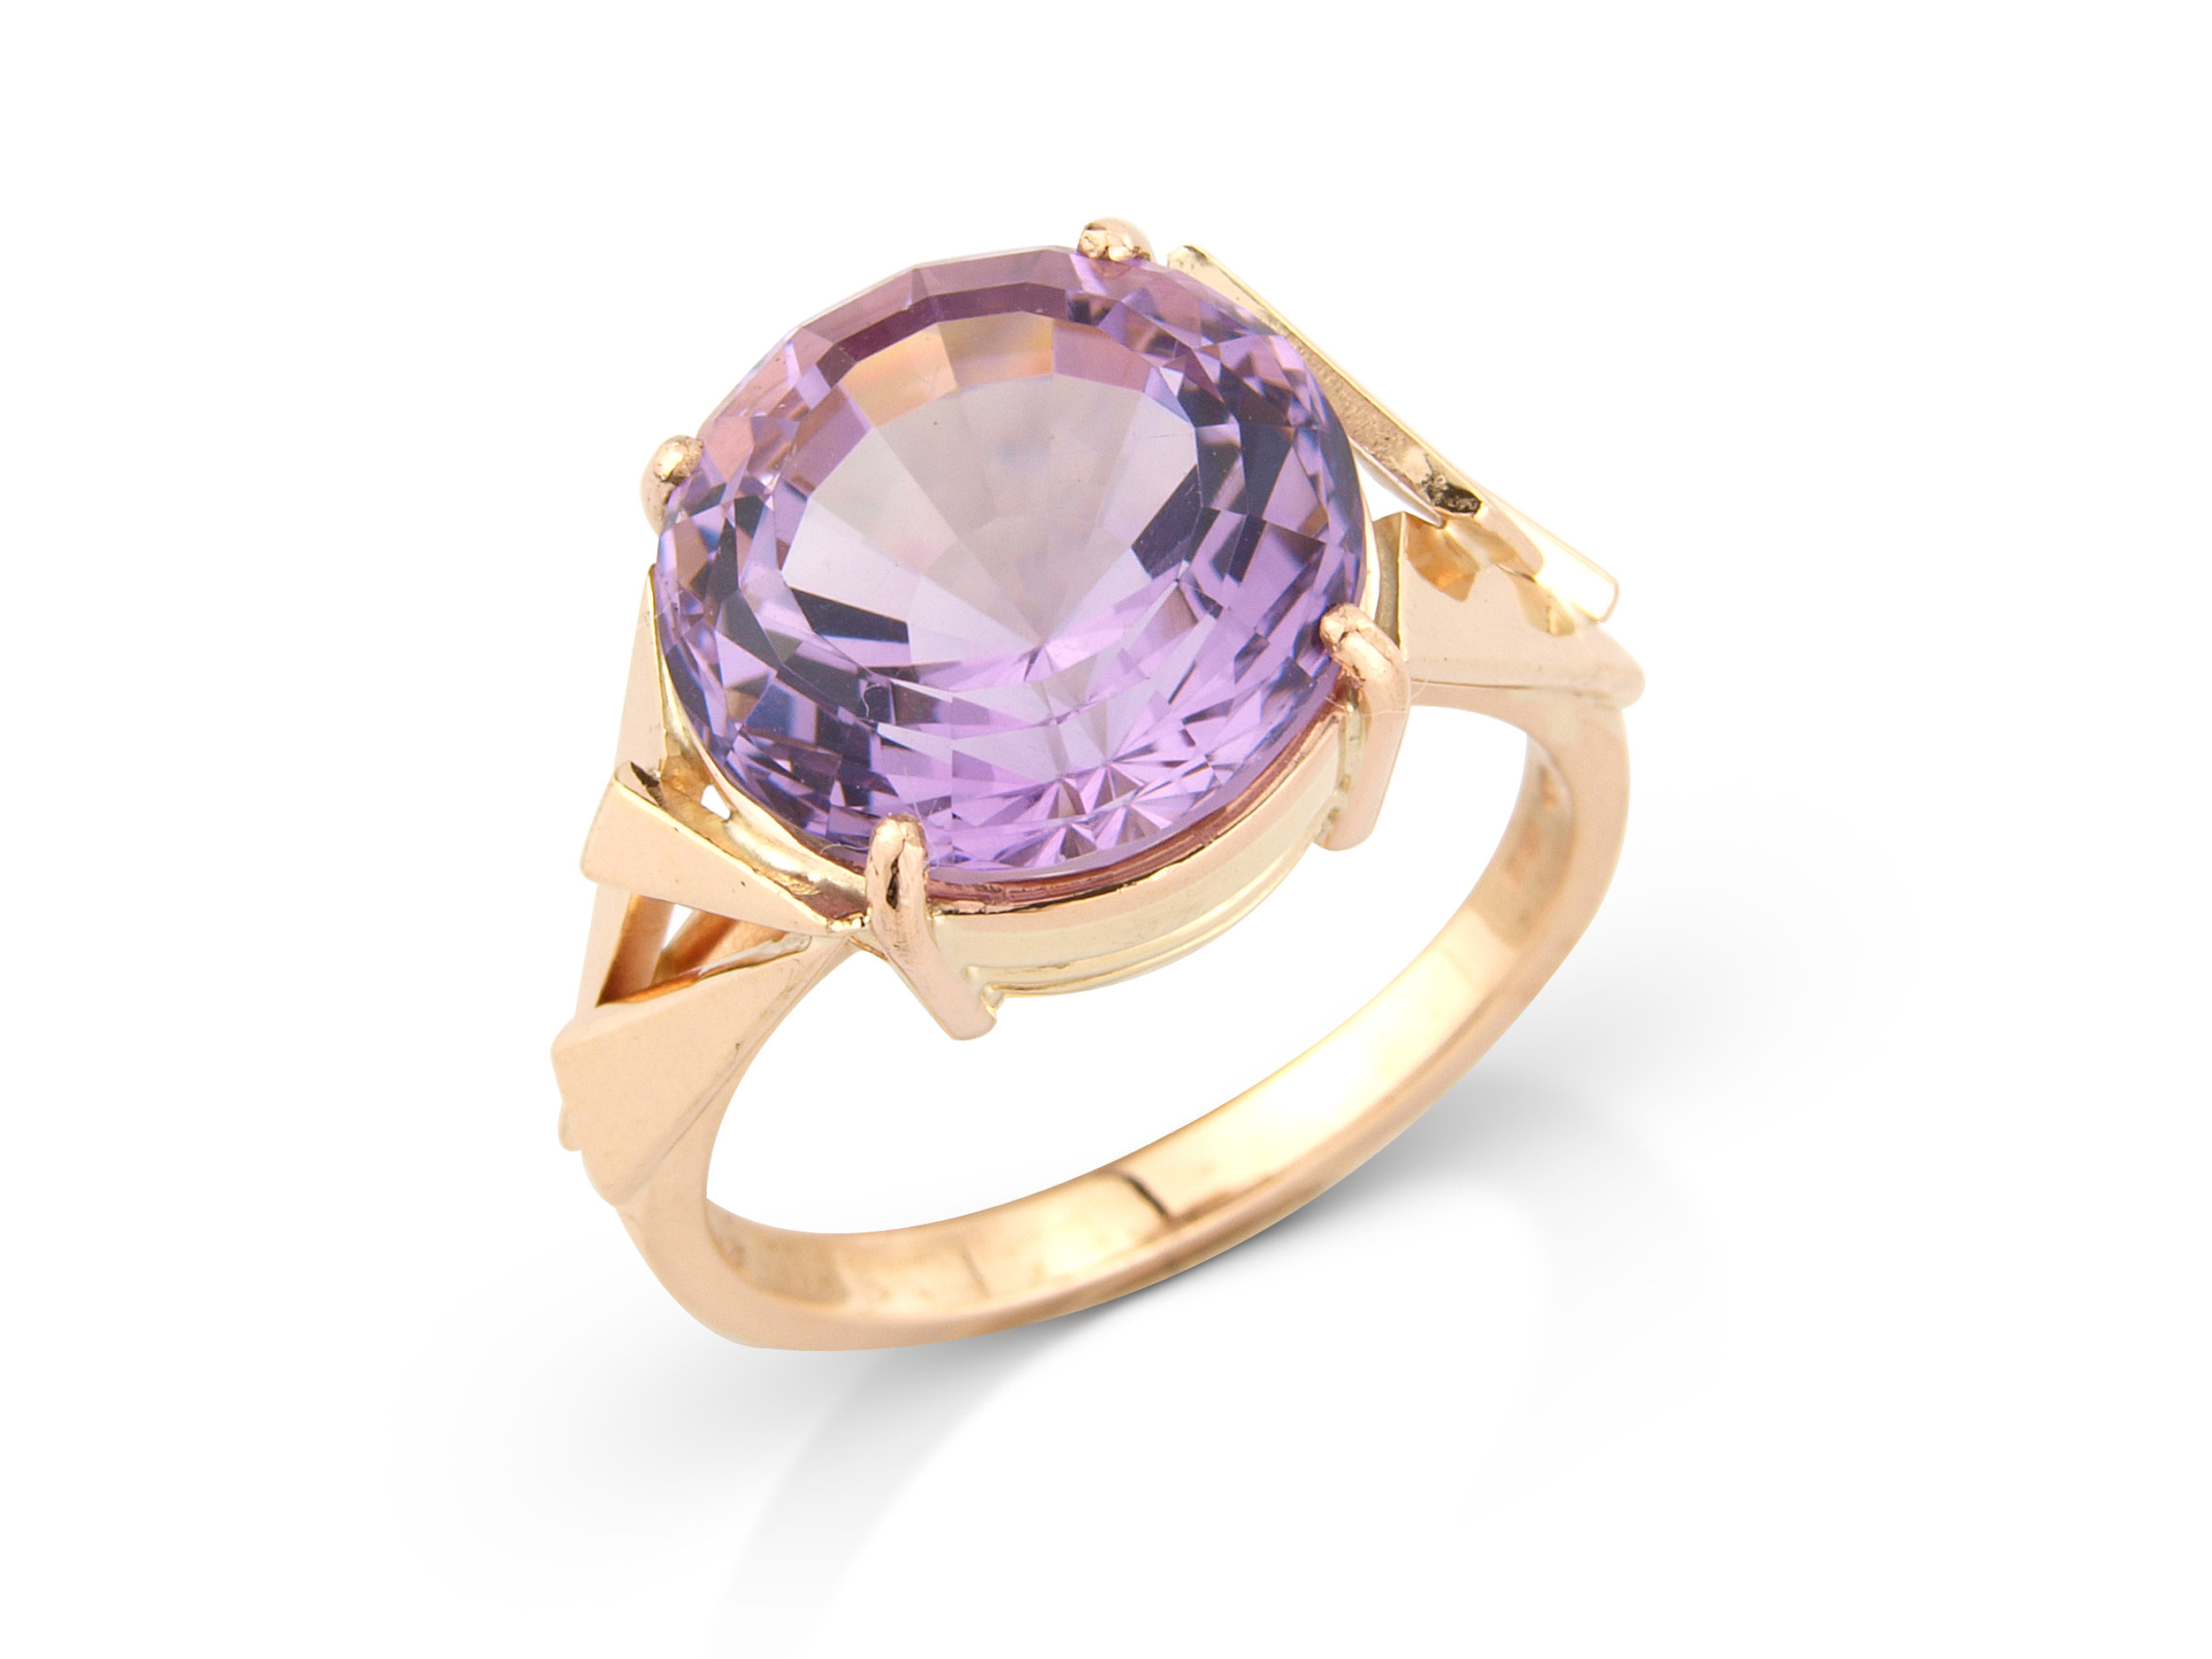 Precision cut Amethyst dress ring designed and hand made by QVJ in 9ct gold.